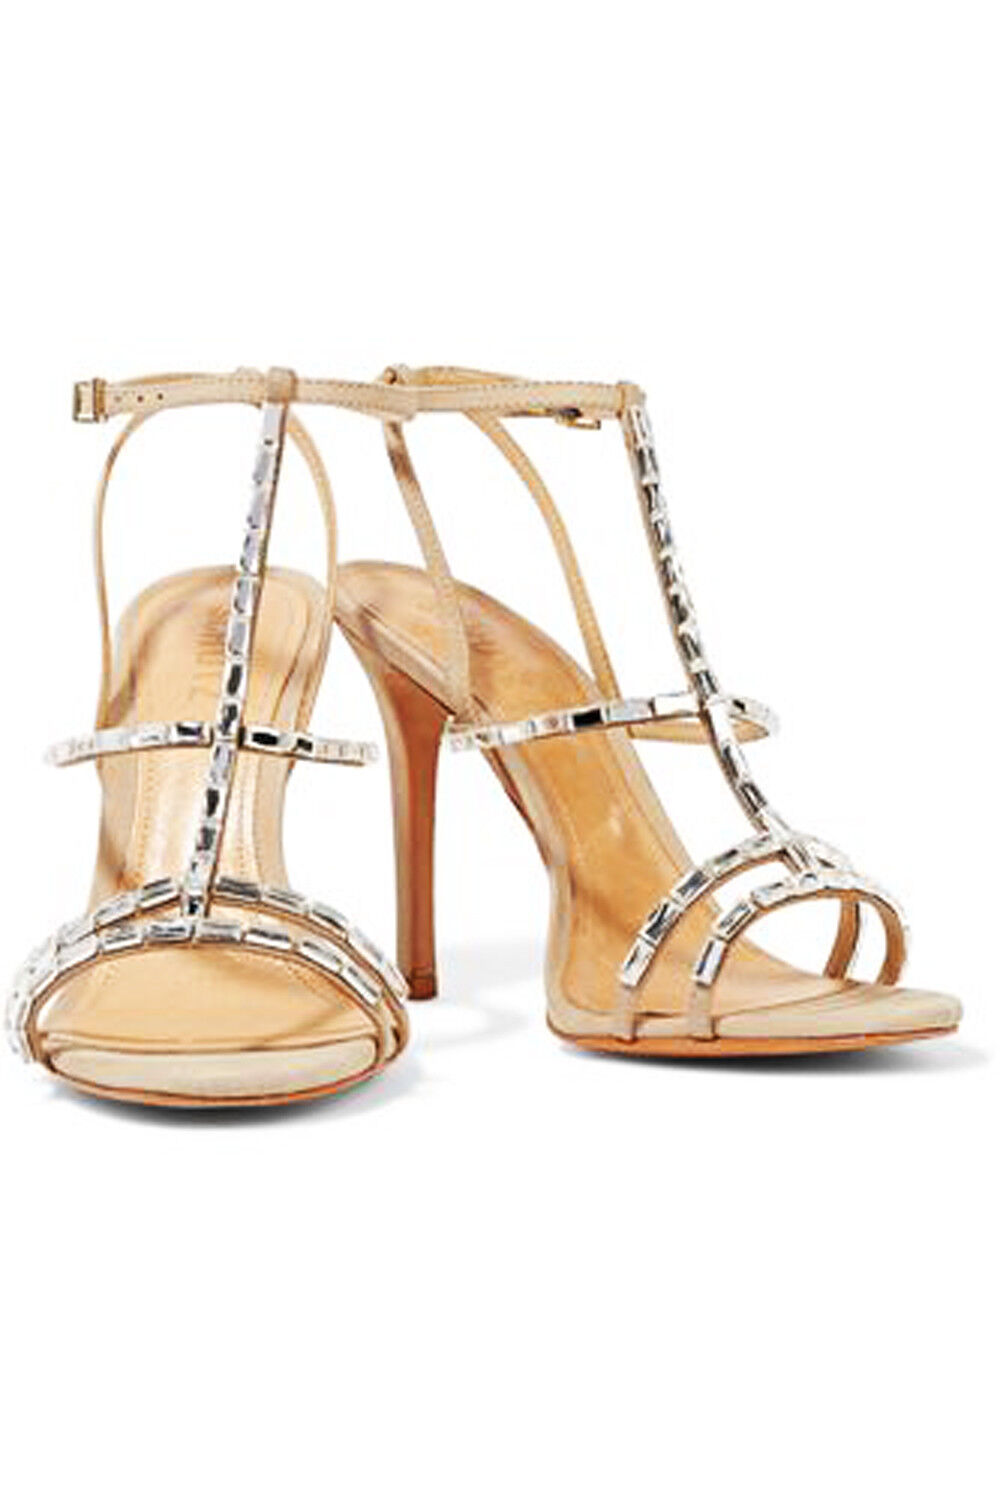 Schutz Darcy Nude Natural Oyster Leather Strappy Stiletto Embellished Sandals